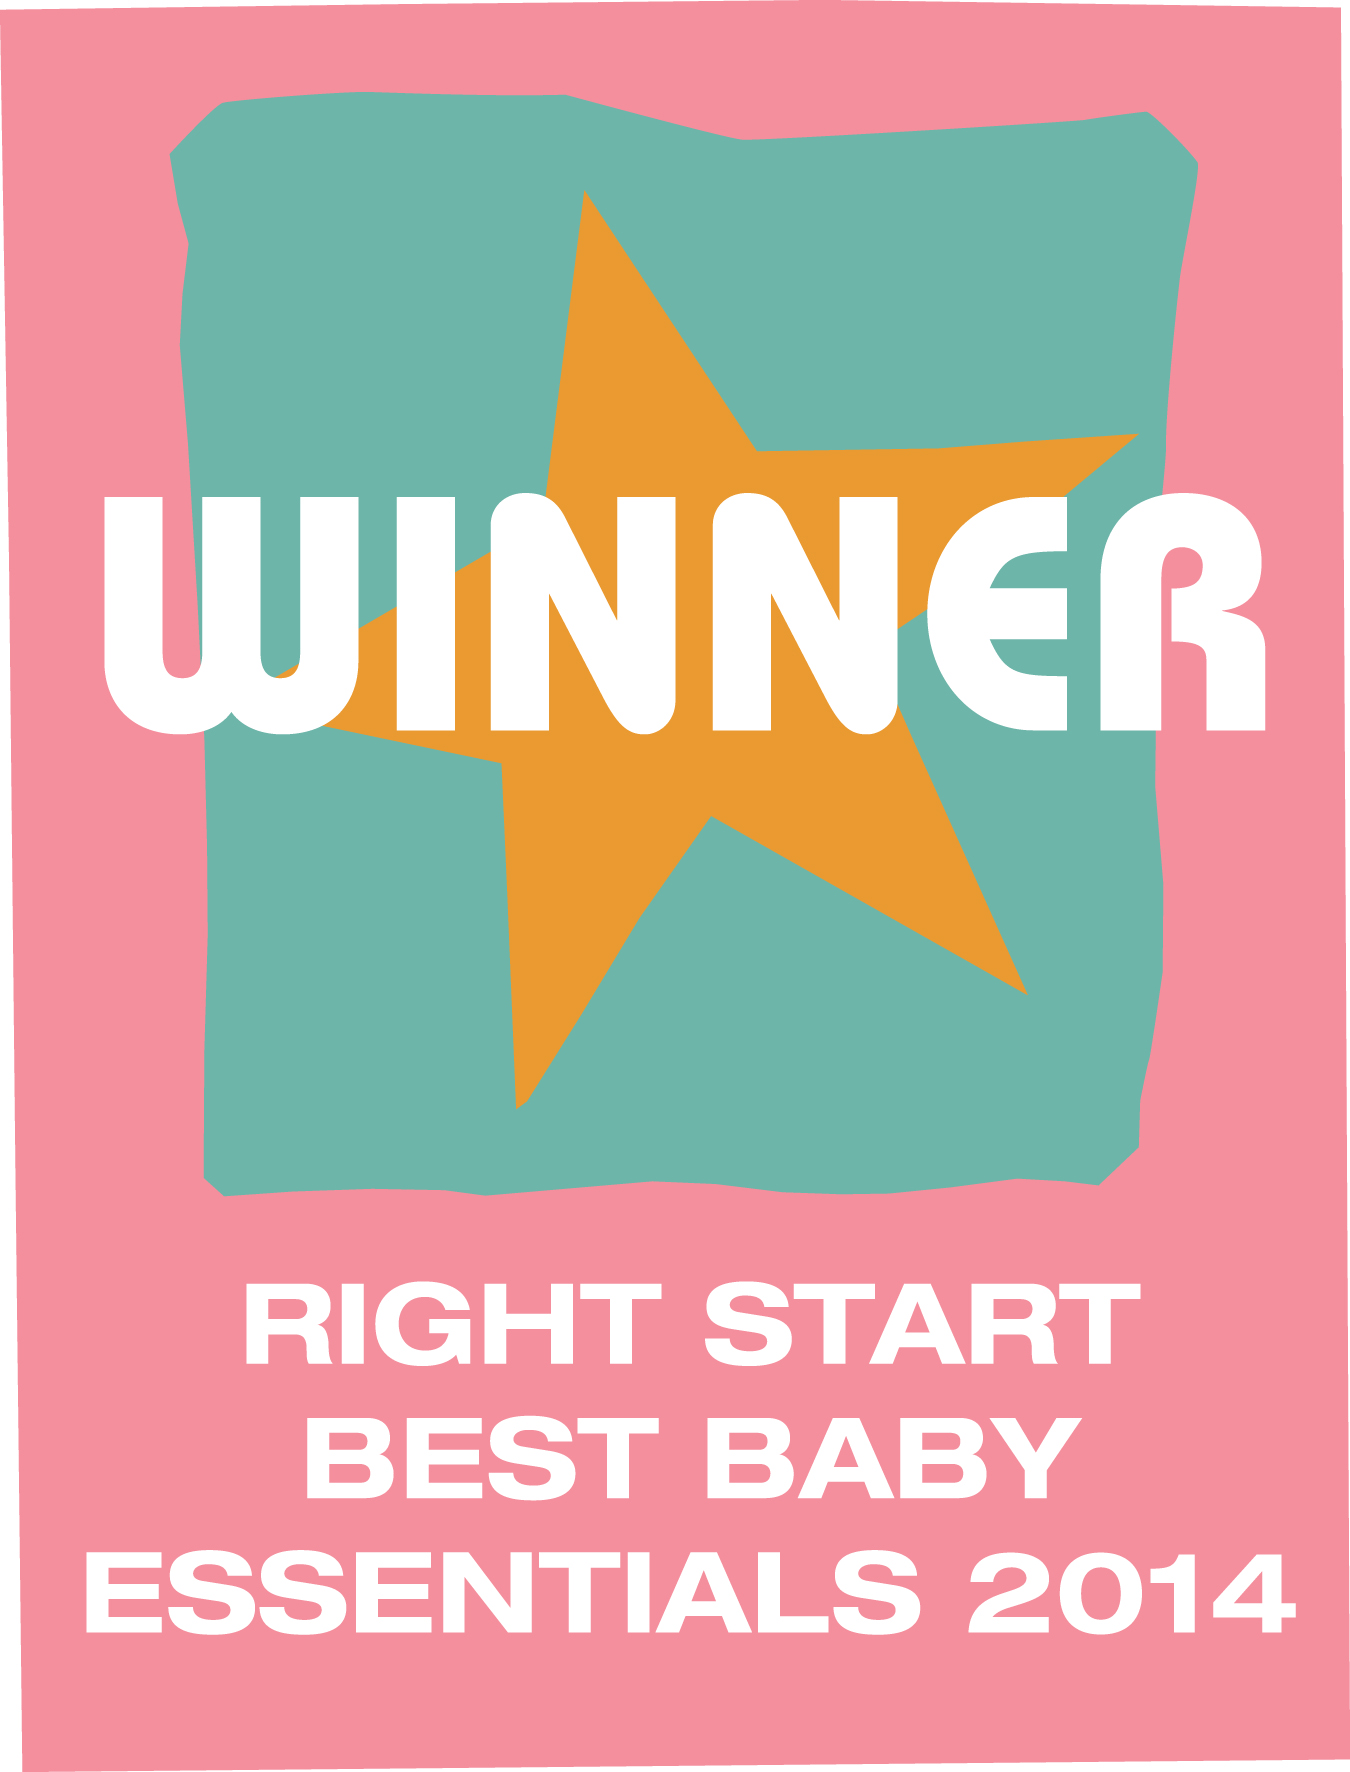 RS Baby Winner ol award 14.jpg